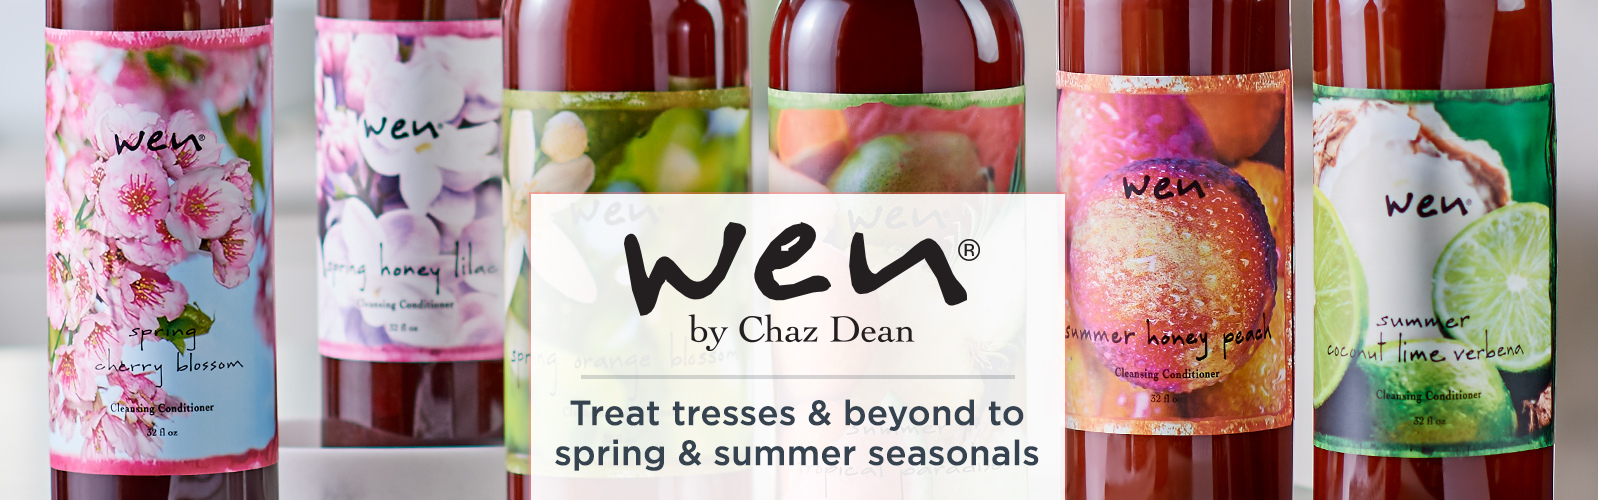 WEN by Chaz Dean. Treat tresses & beyond to spring & summer seasonals